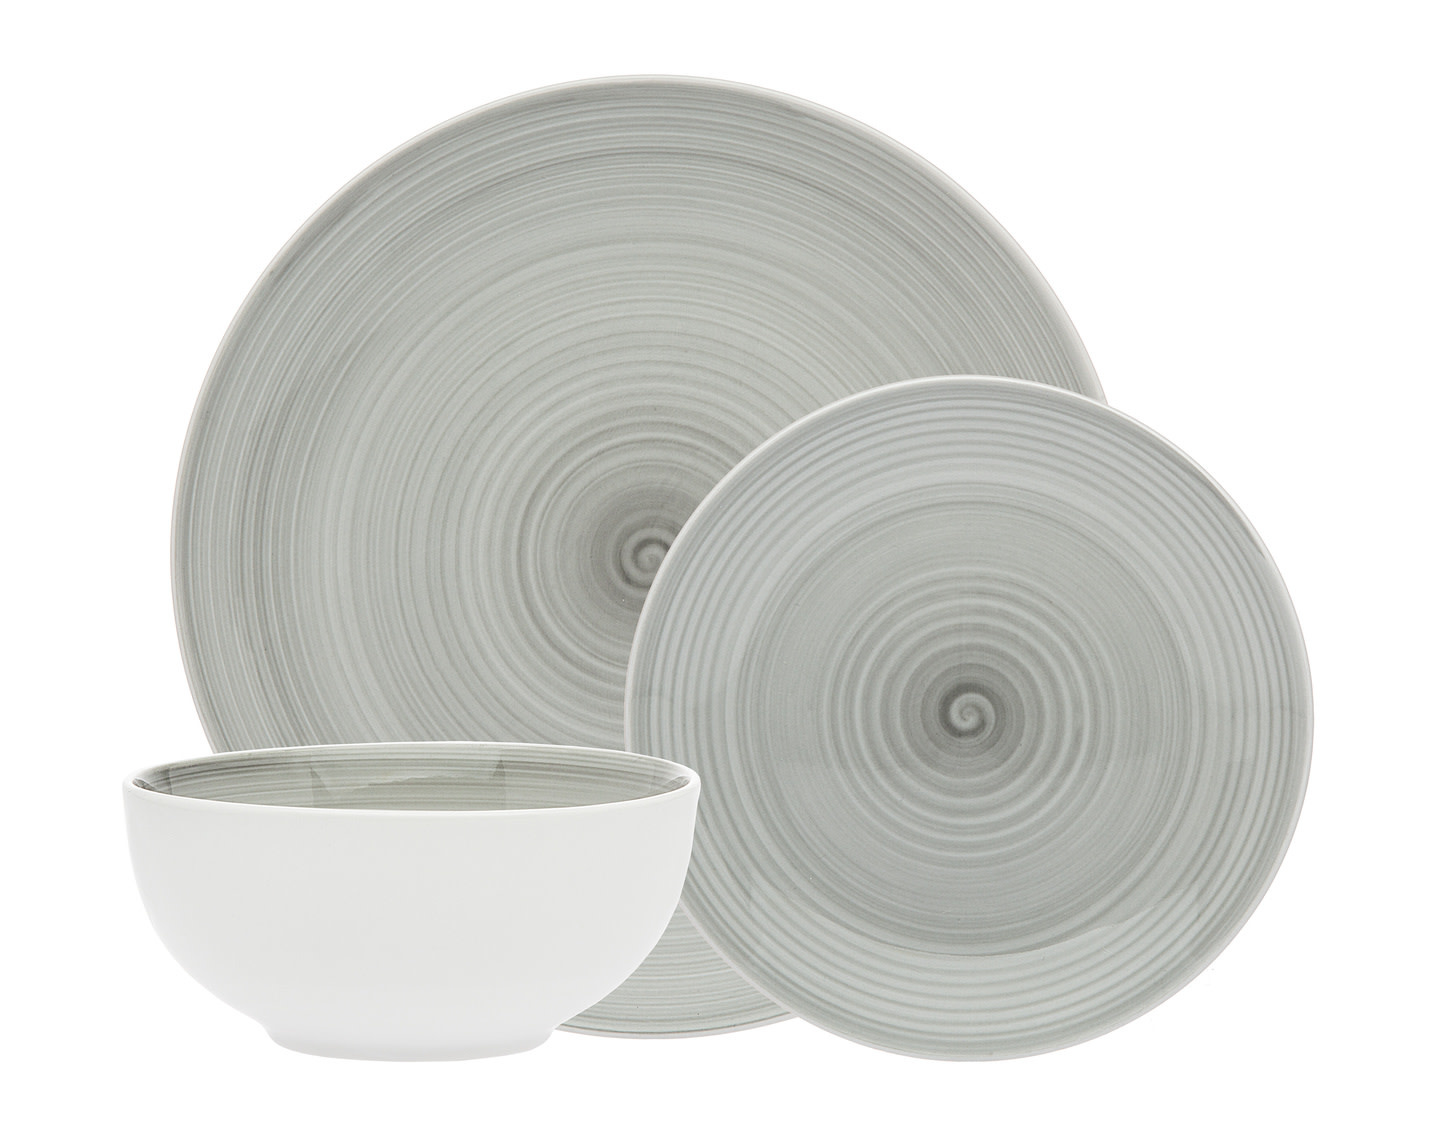 Spiral Grey Porcelain 12 pc Dinnerware set